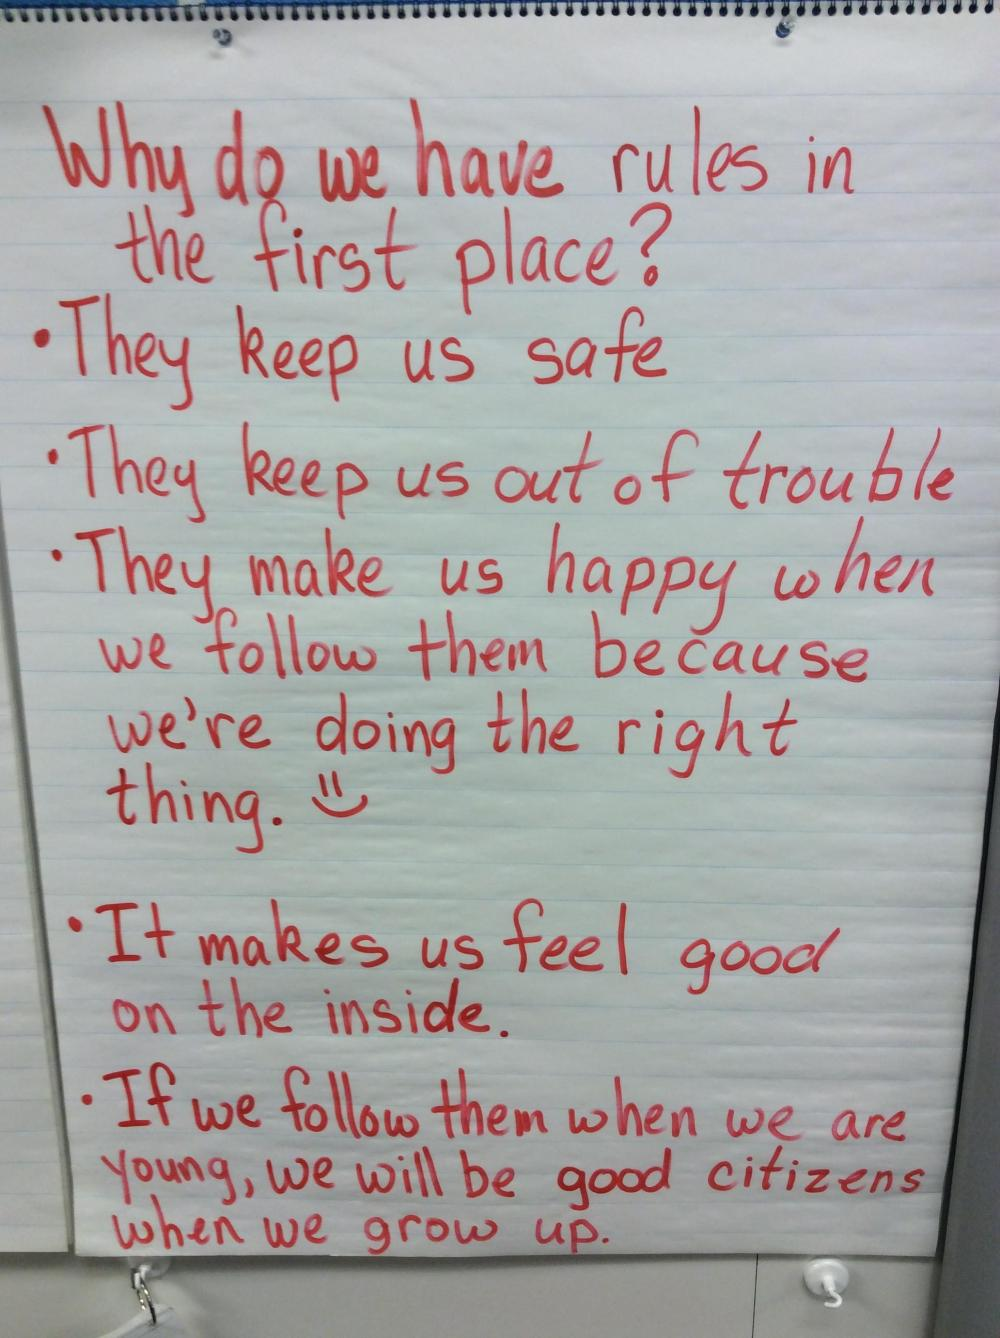 medium resolution of alan gieleghem s third graders work to discover the underlying meaning of the rules in their classroom in the chart below